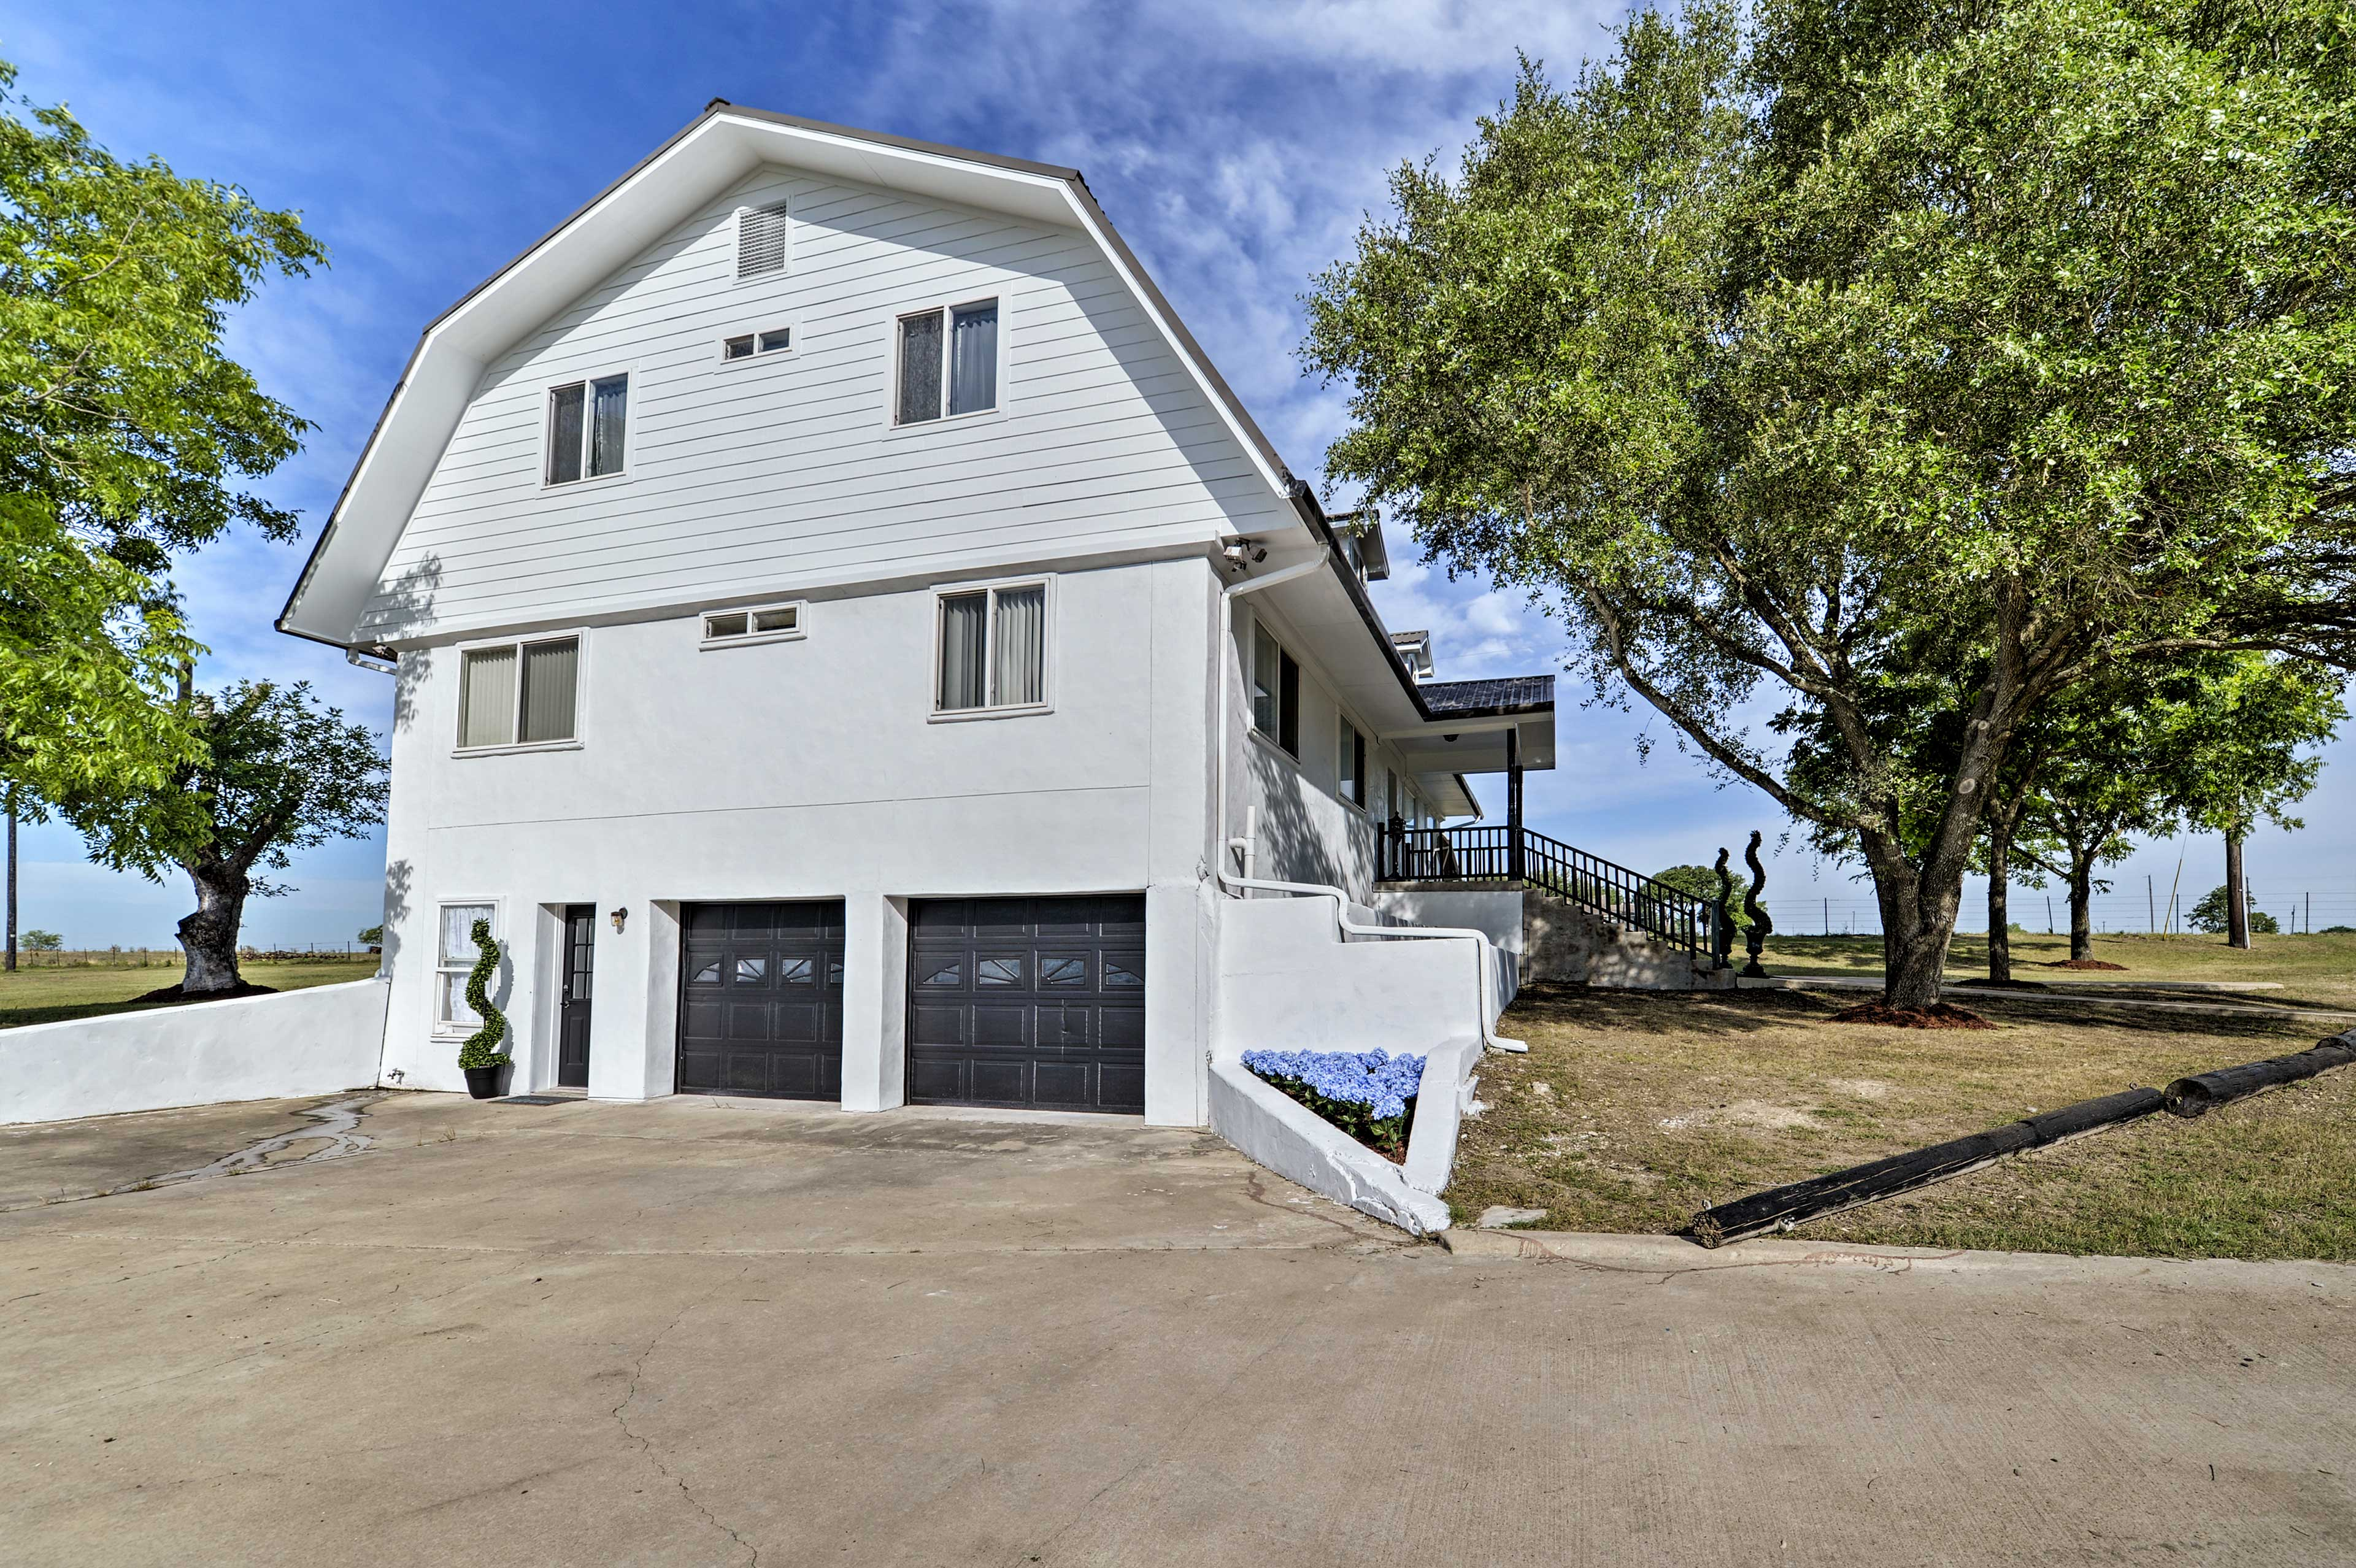 Ample driveway space adds convenience to your stay.